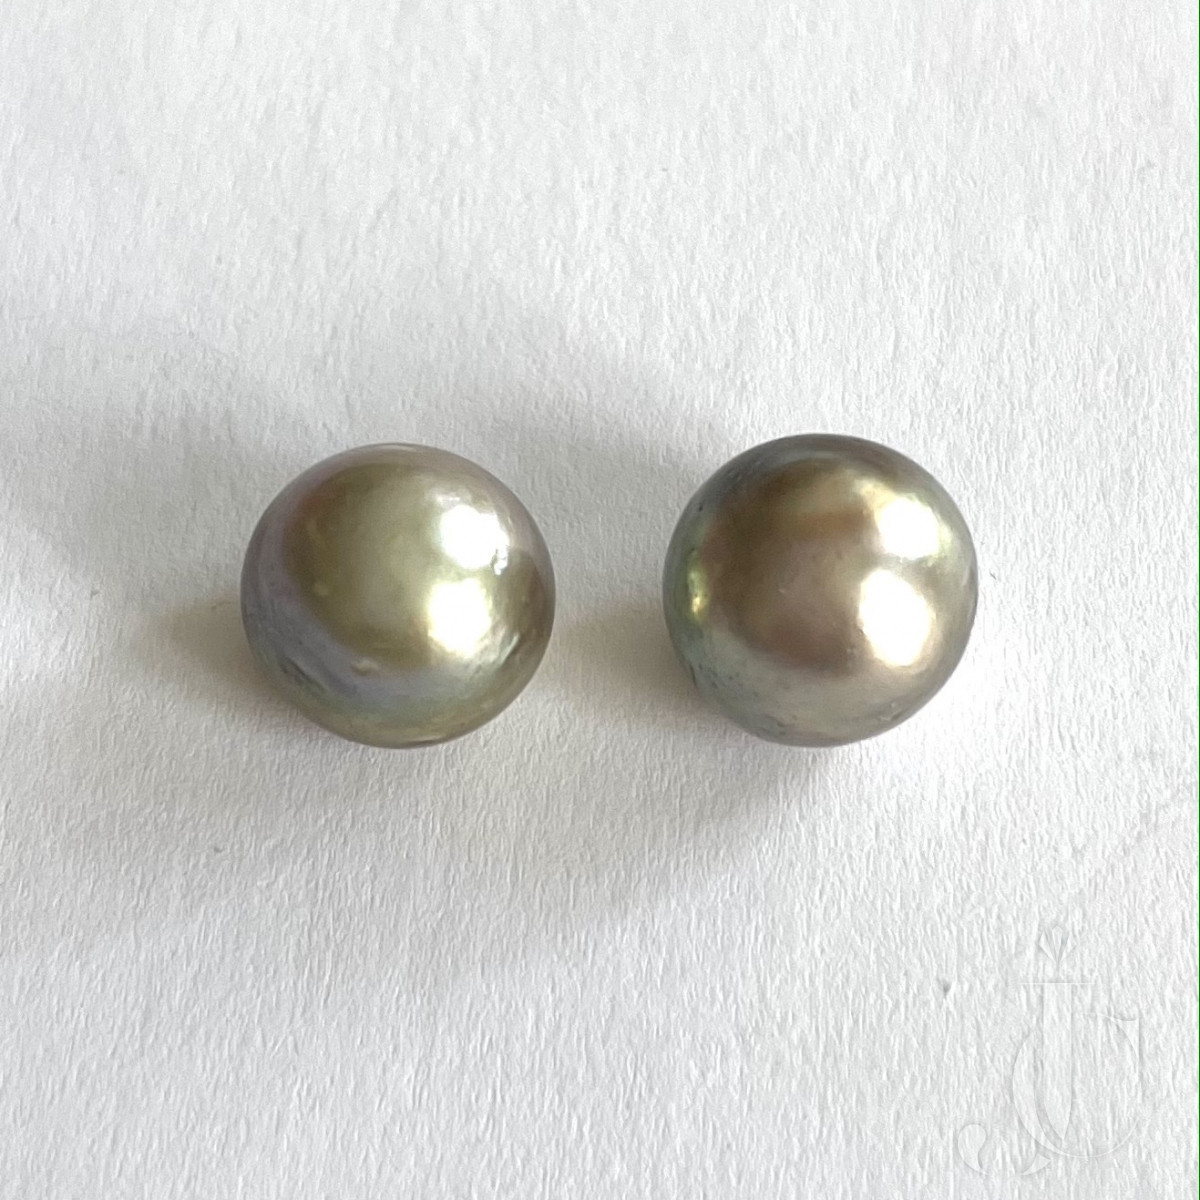 12,78 + 11,91 ct Pair of natural Pearl boutons